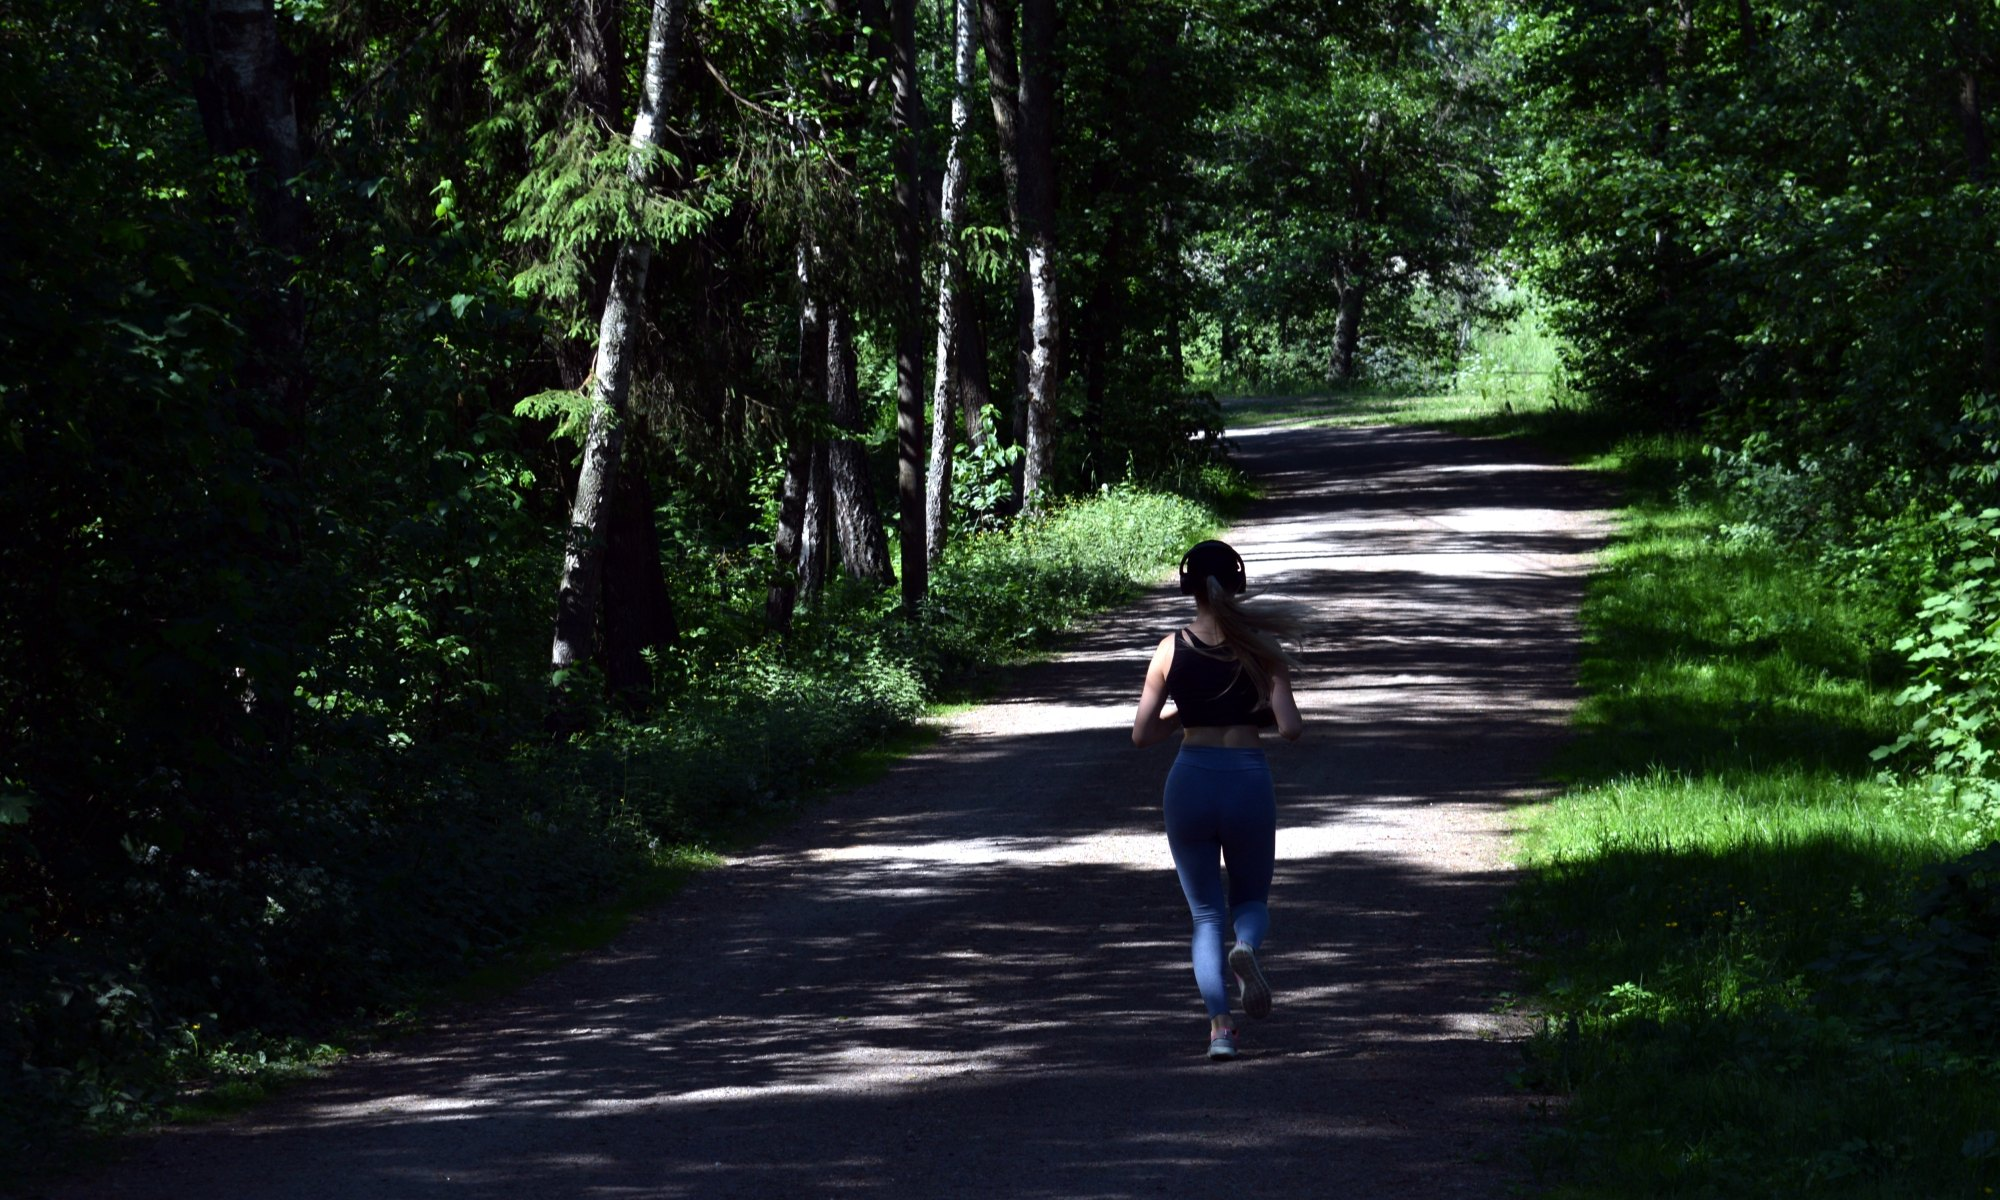 Woman with headphones jogging in nature on forest trail near green trees